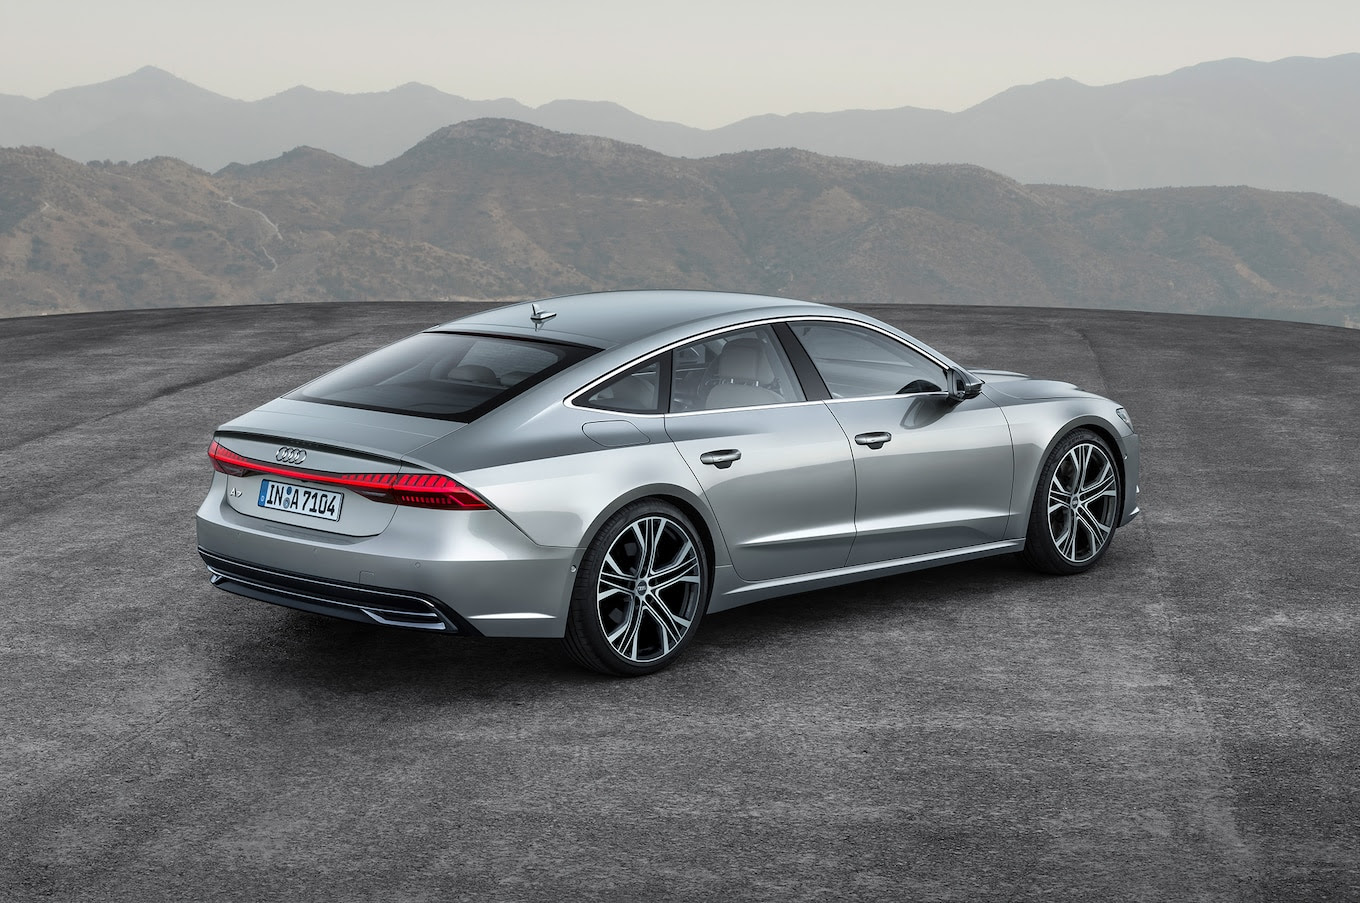 2019 Audi A7 First Look: Four-Door Fastback Gets Techier ...